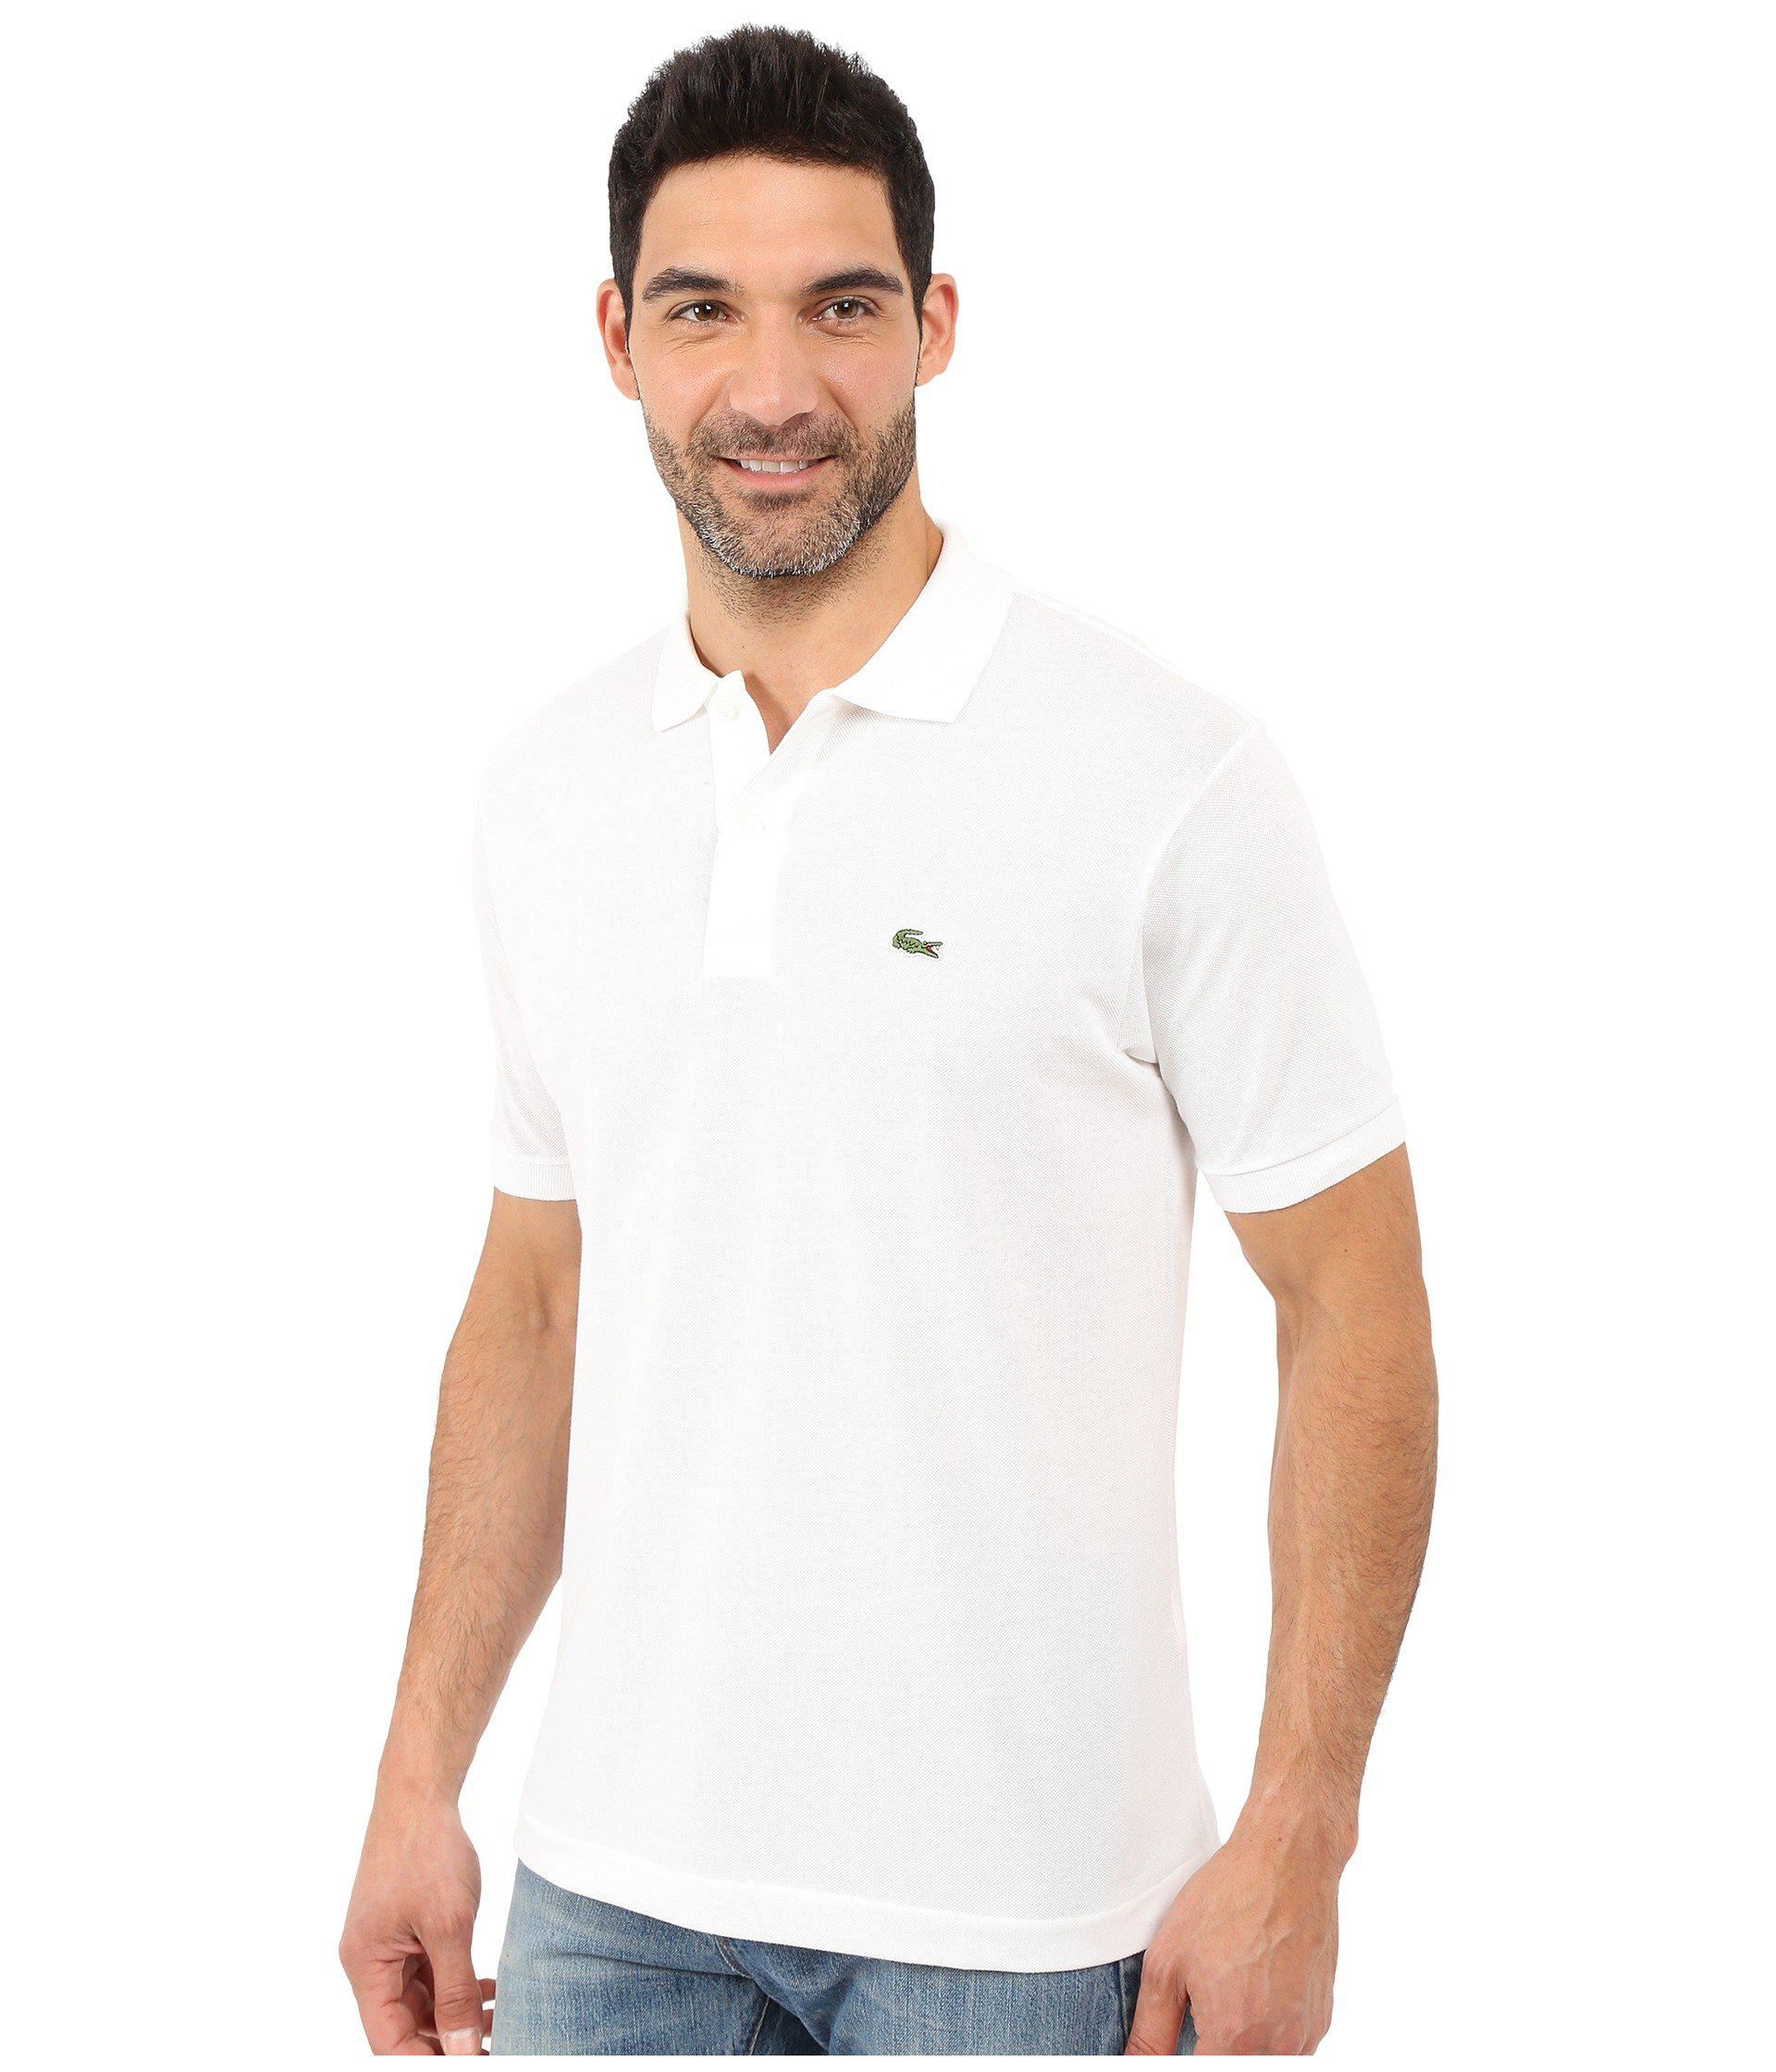 11f483c448a3 Lyst - Lacoste L1212 Classic Pique Polo Shirt (white) Men s Short Sleeve  Knit in White for Men